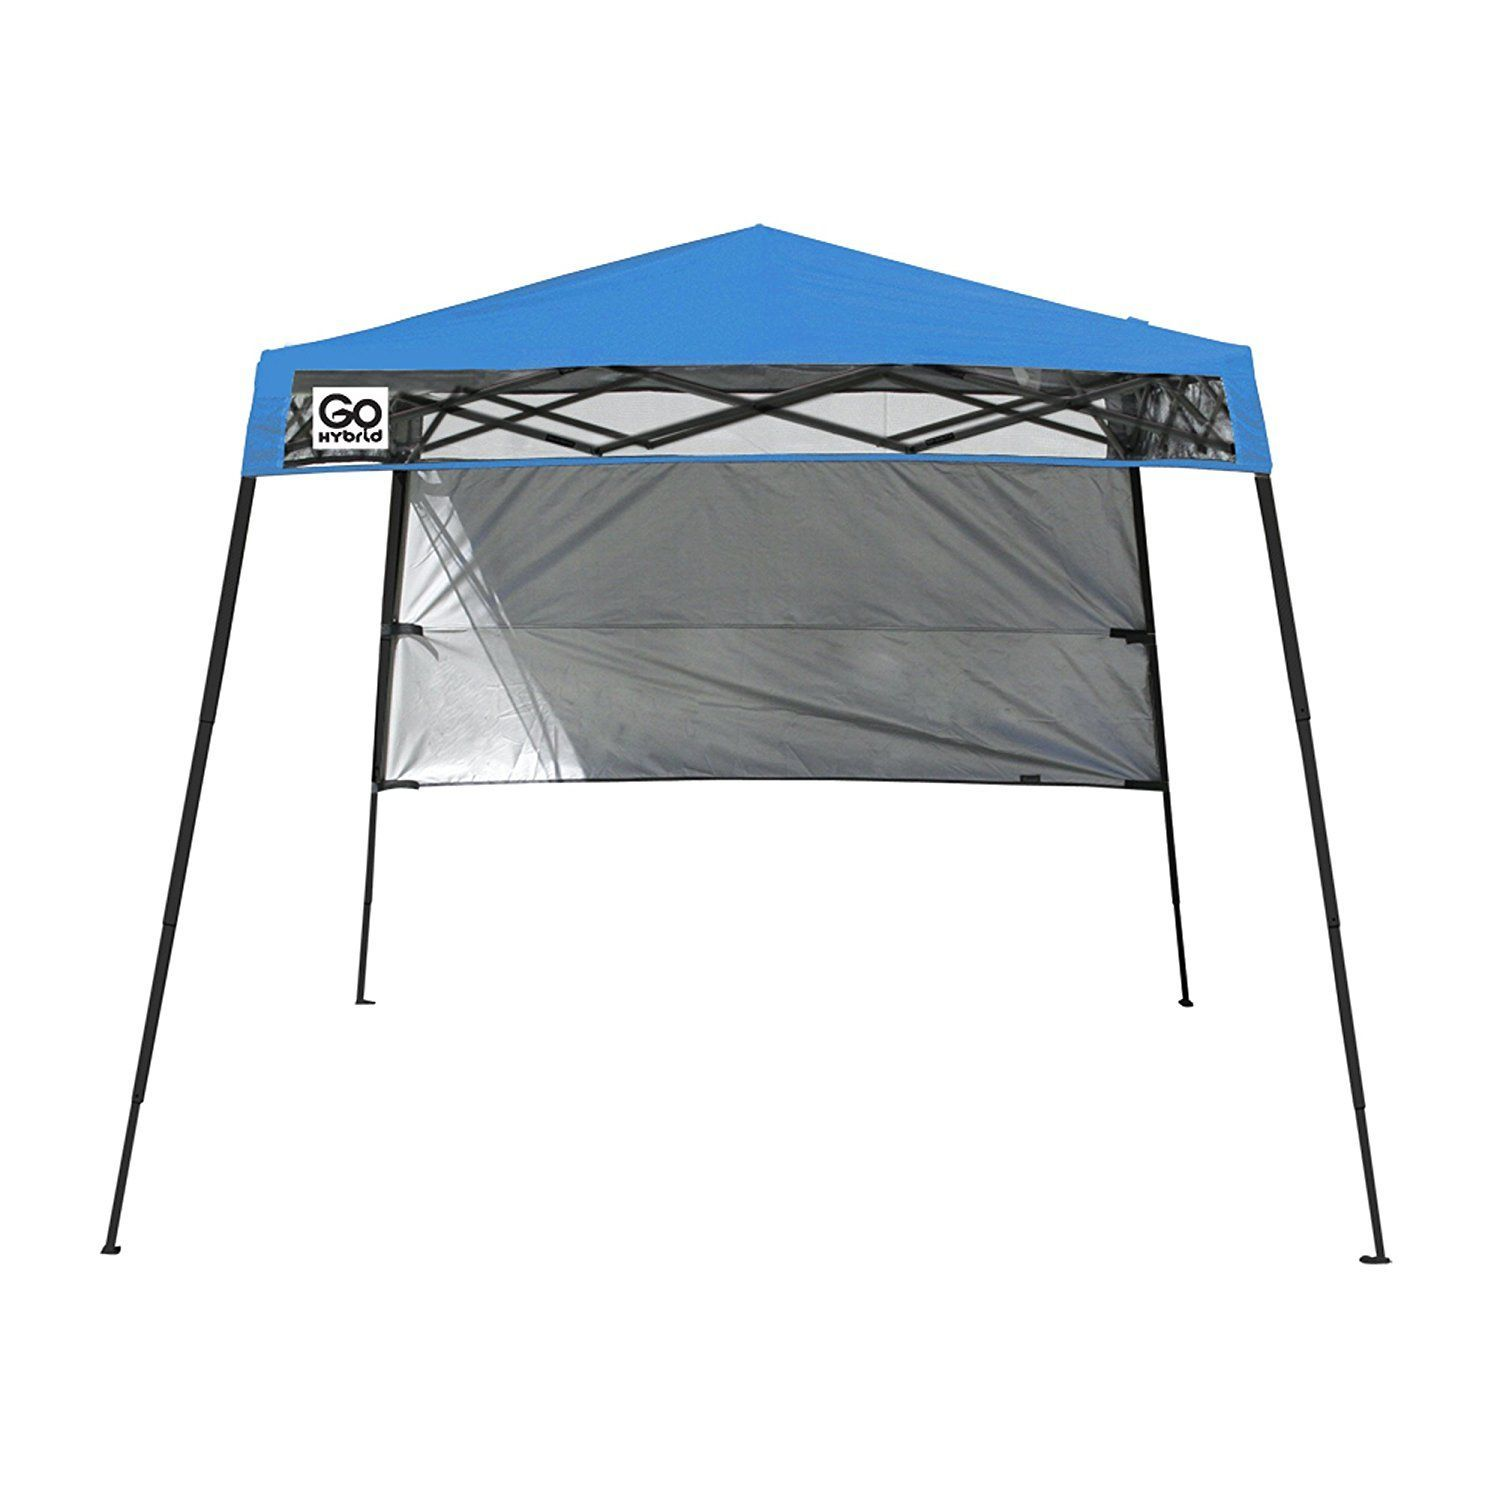 Small Pop Up Canopy Tent - Best Interior Paint Brand Check more at /  sc 1 st  Pinterest & Small Pop Up Canopy Tent - Best Interior Paint Brand Check more at ...